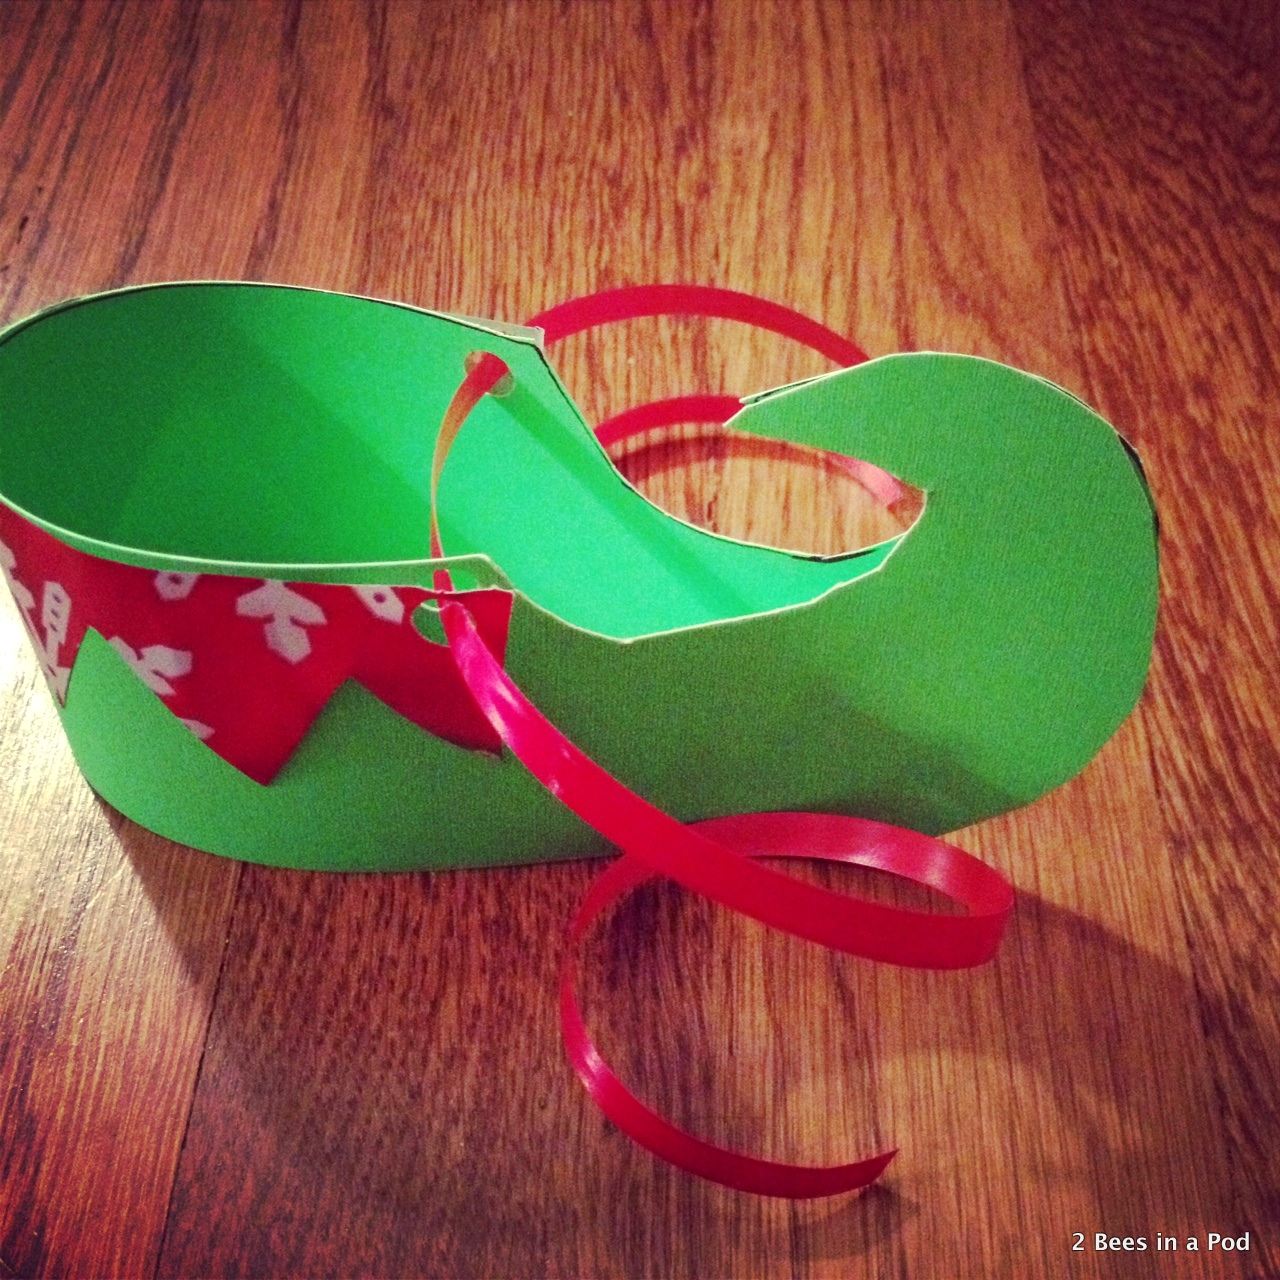 Added wrapping paper & ribbon to my elf shoes